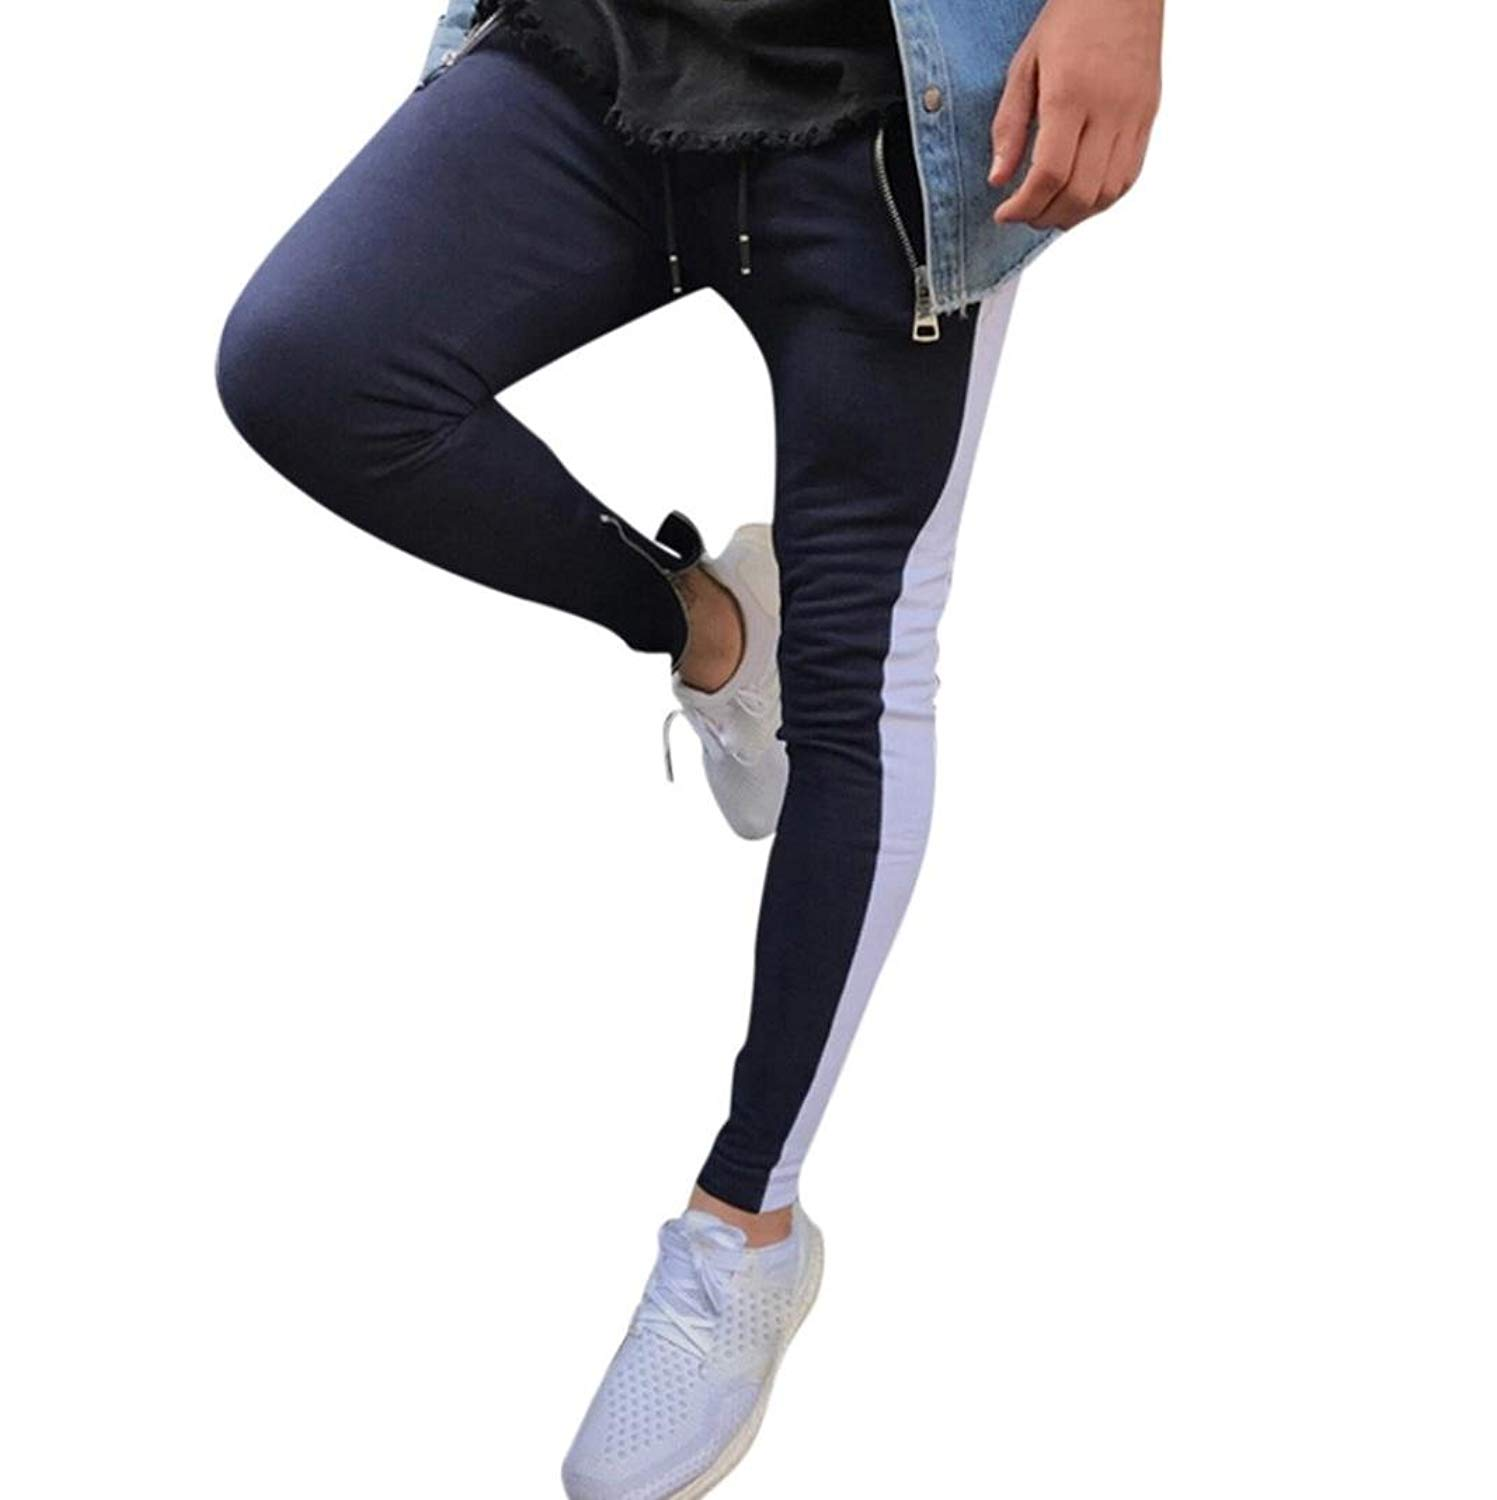 aaae8b93a5327 Get Quotations · Realdo Mens Slim Sports Trousers